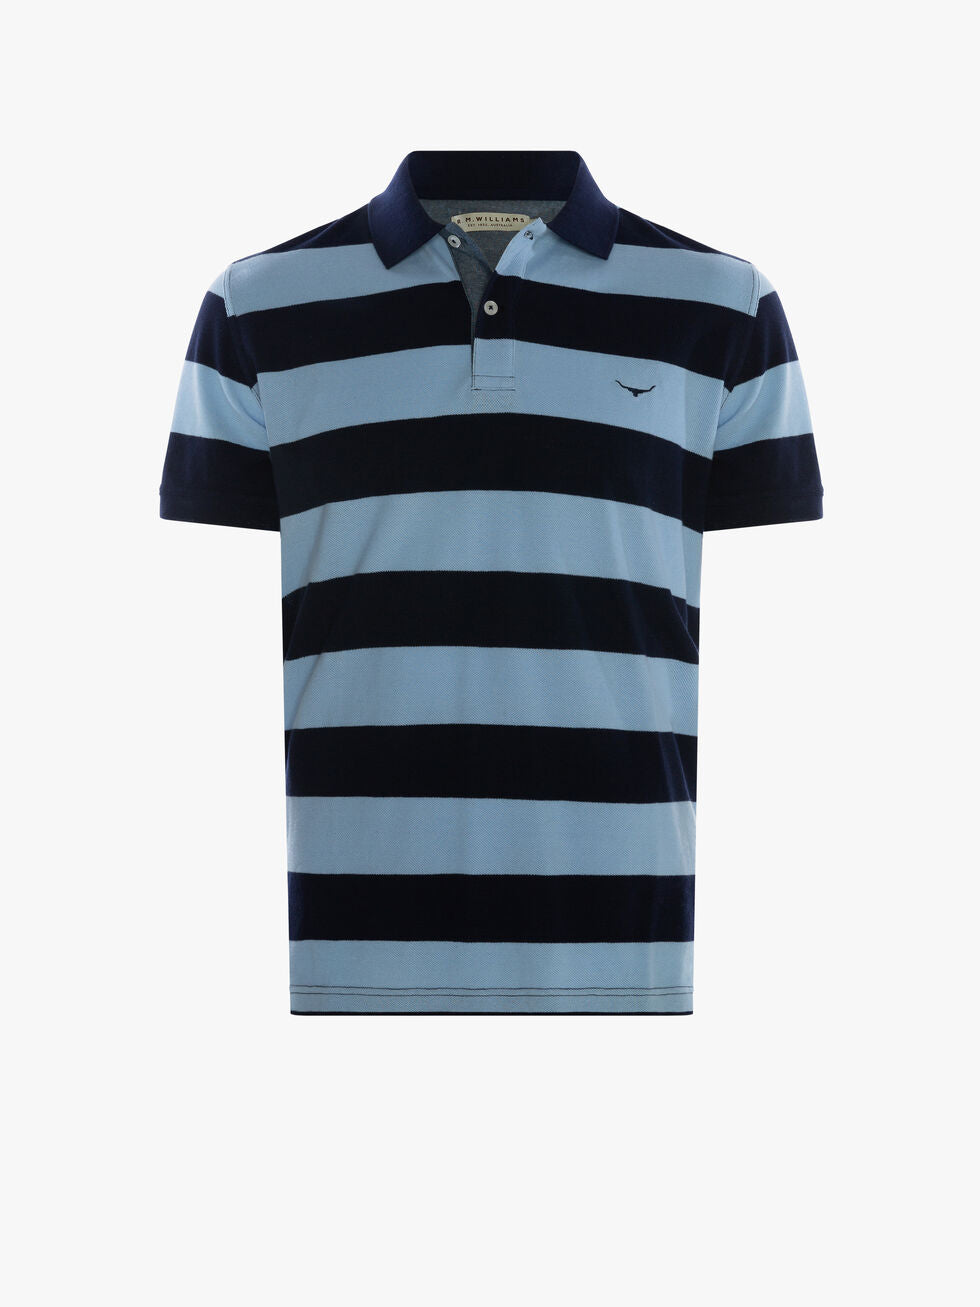 R.M. Williams Rokewood Polo - Navy/Light Blue